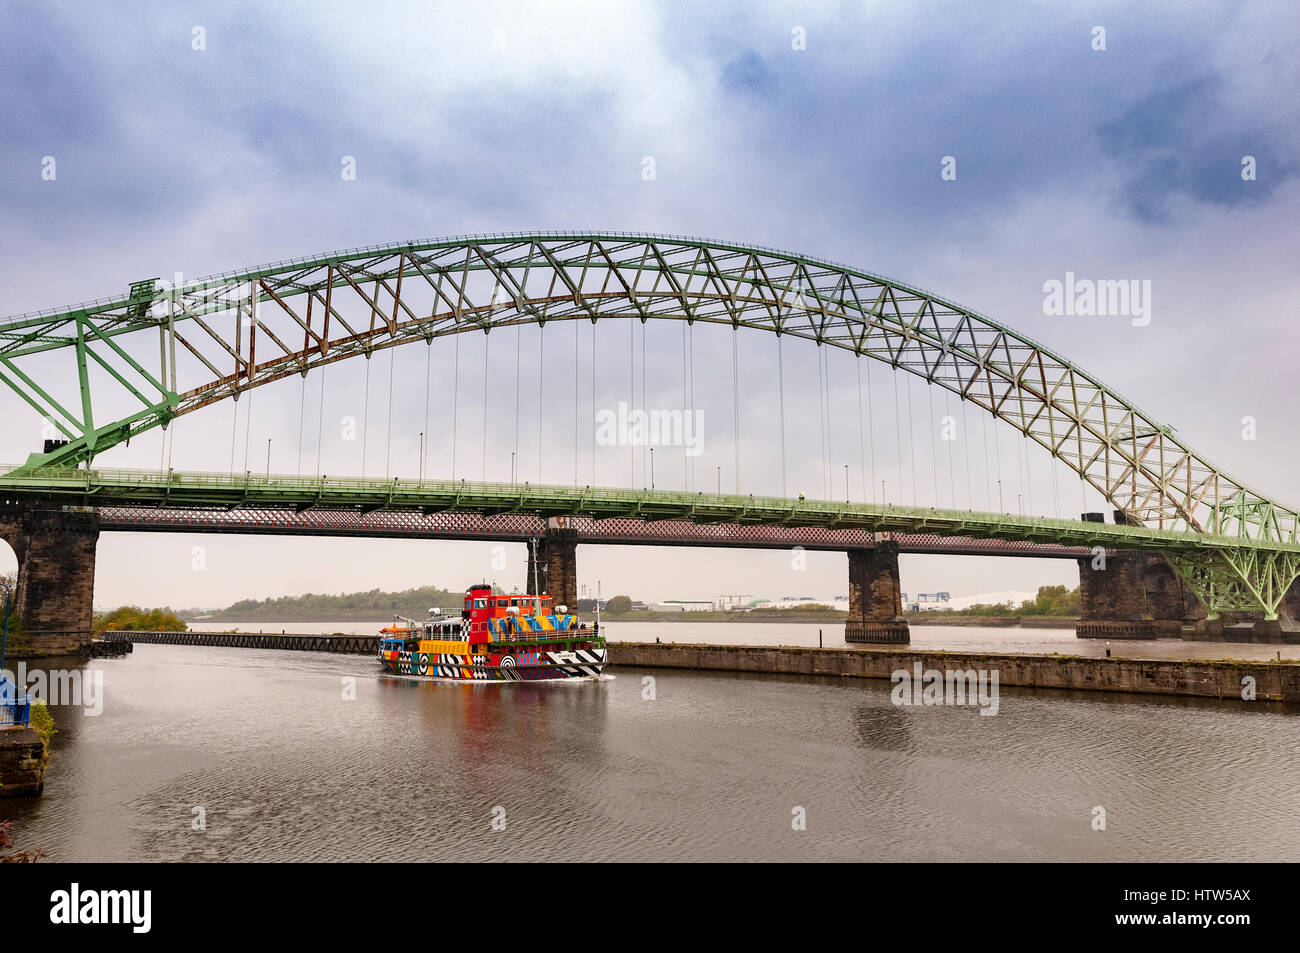 Merseyferries Dazzle ferry Snowdrop on the Manchester Ship Canal cruise.Runcorn Queensway Bridge. - Stock Image